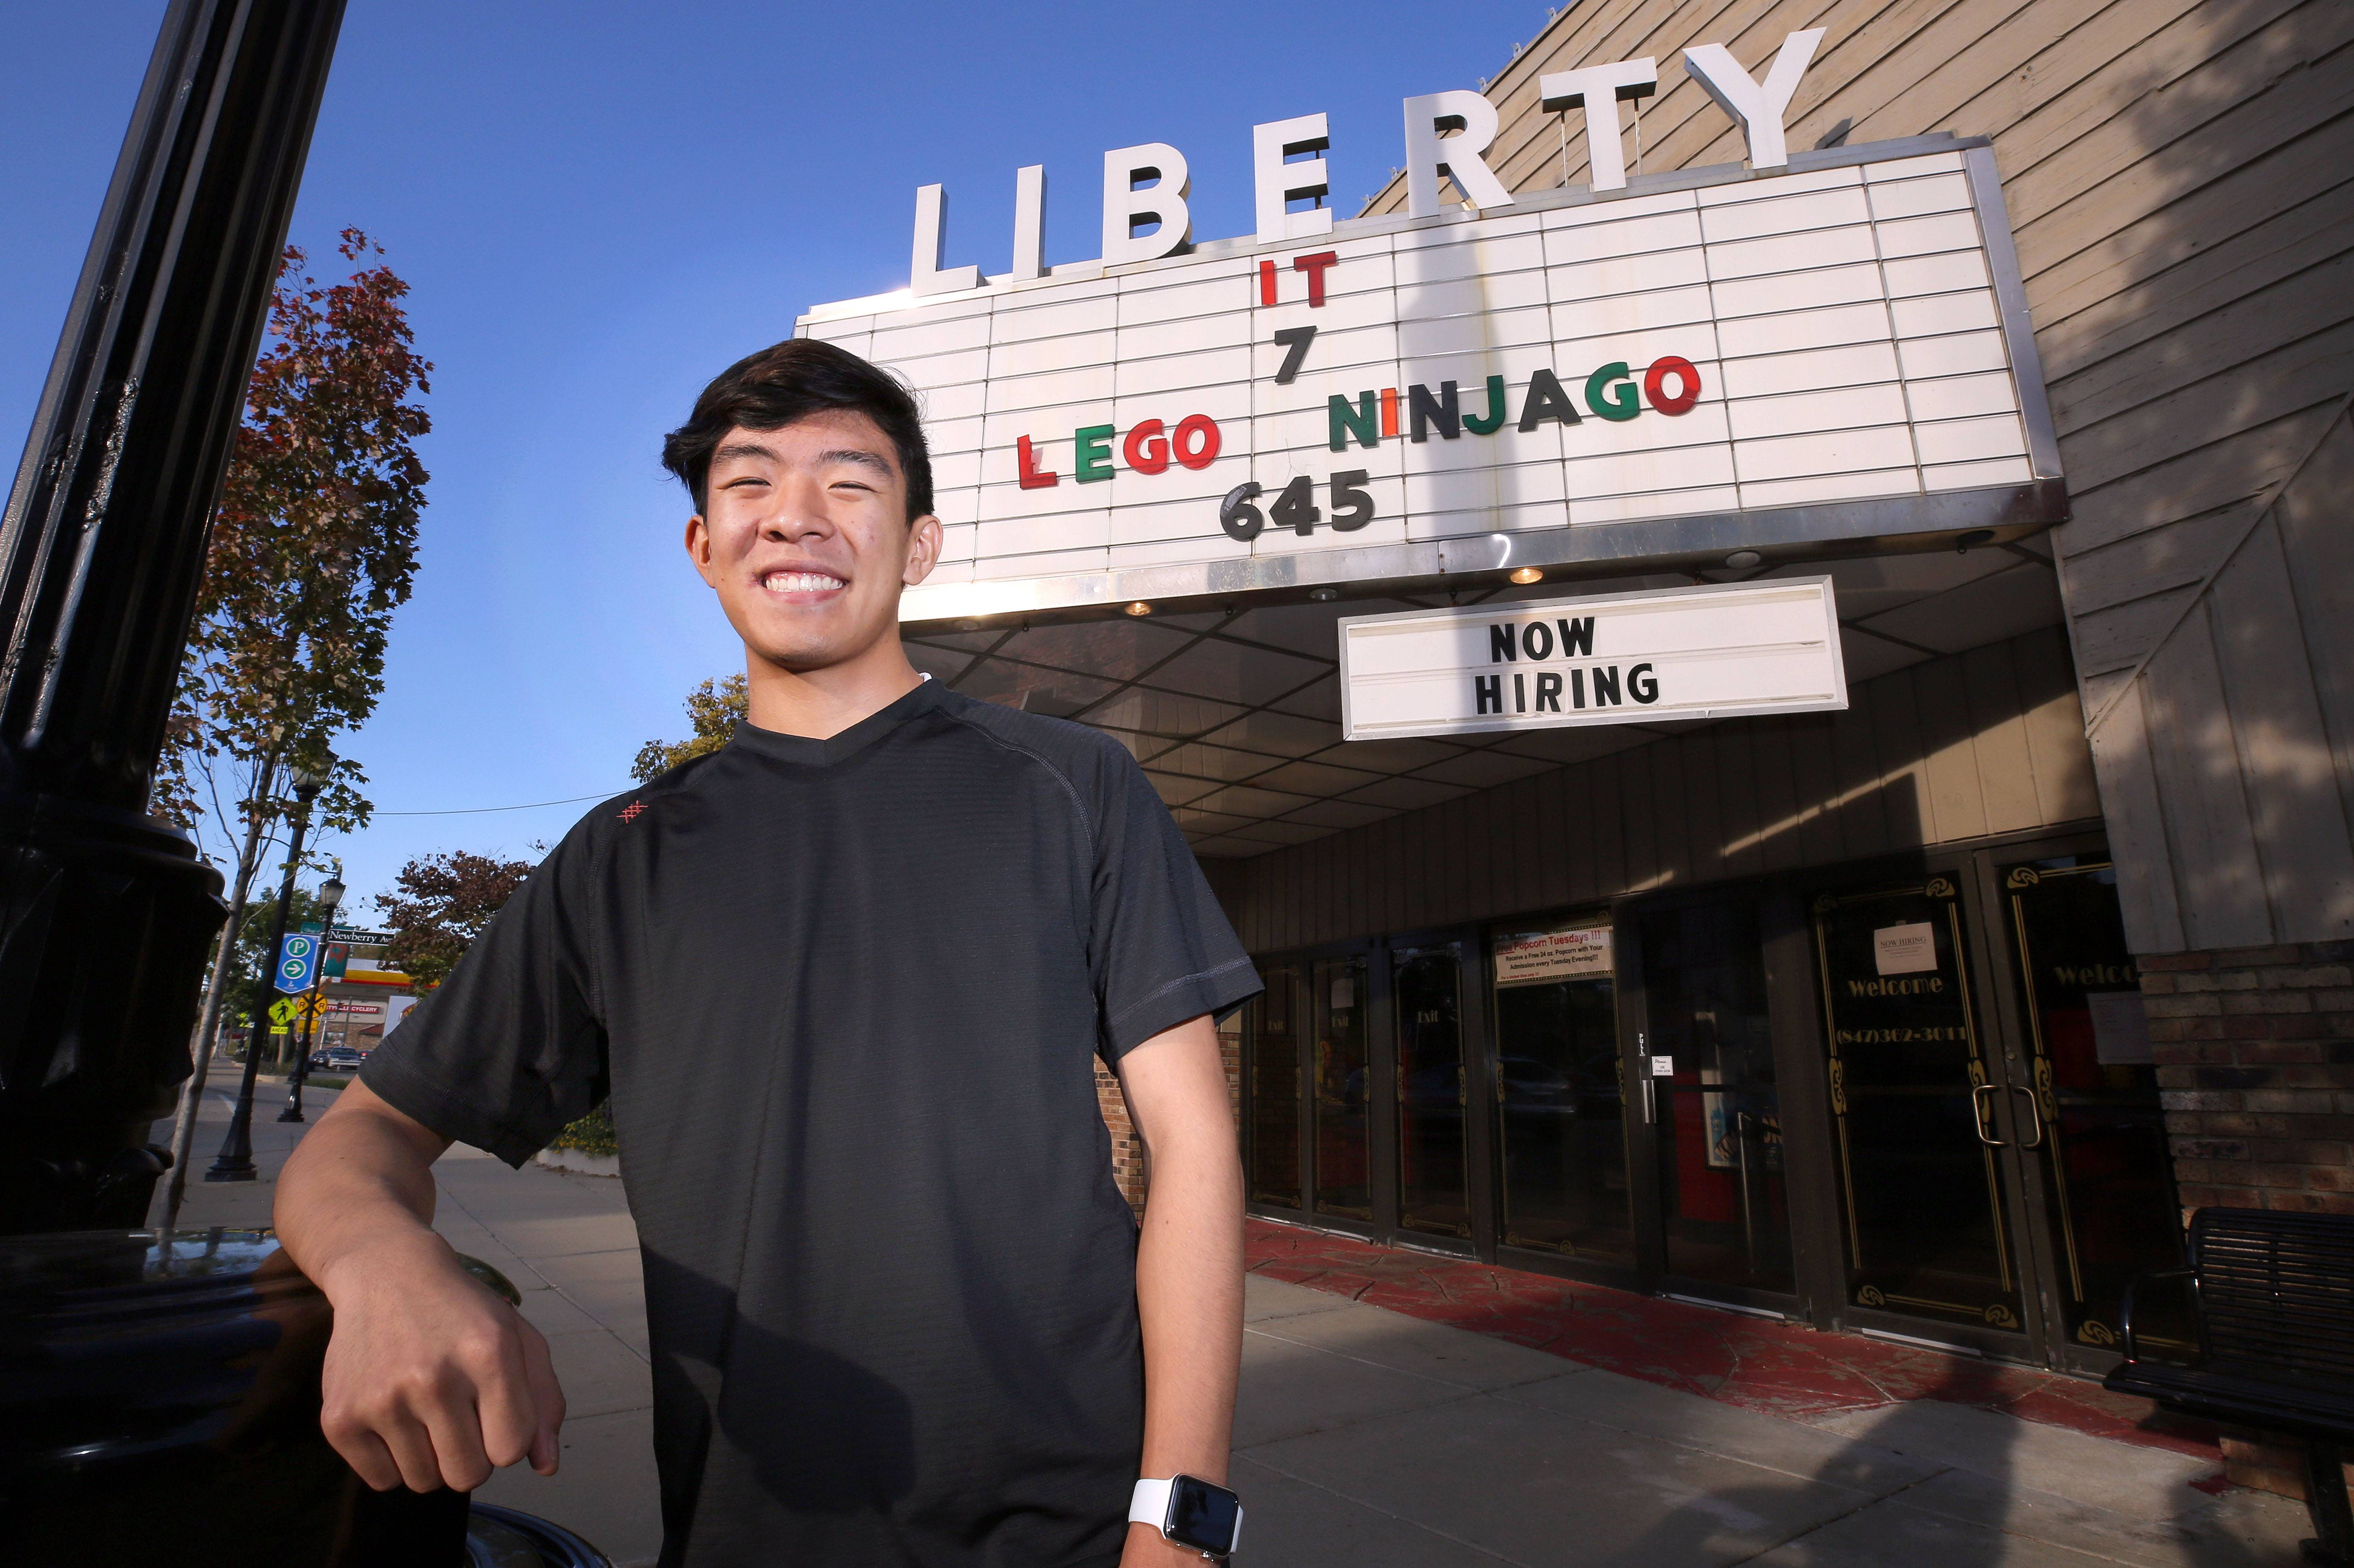 High school students lead effort to protect Liberty Theater